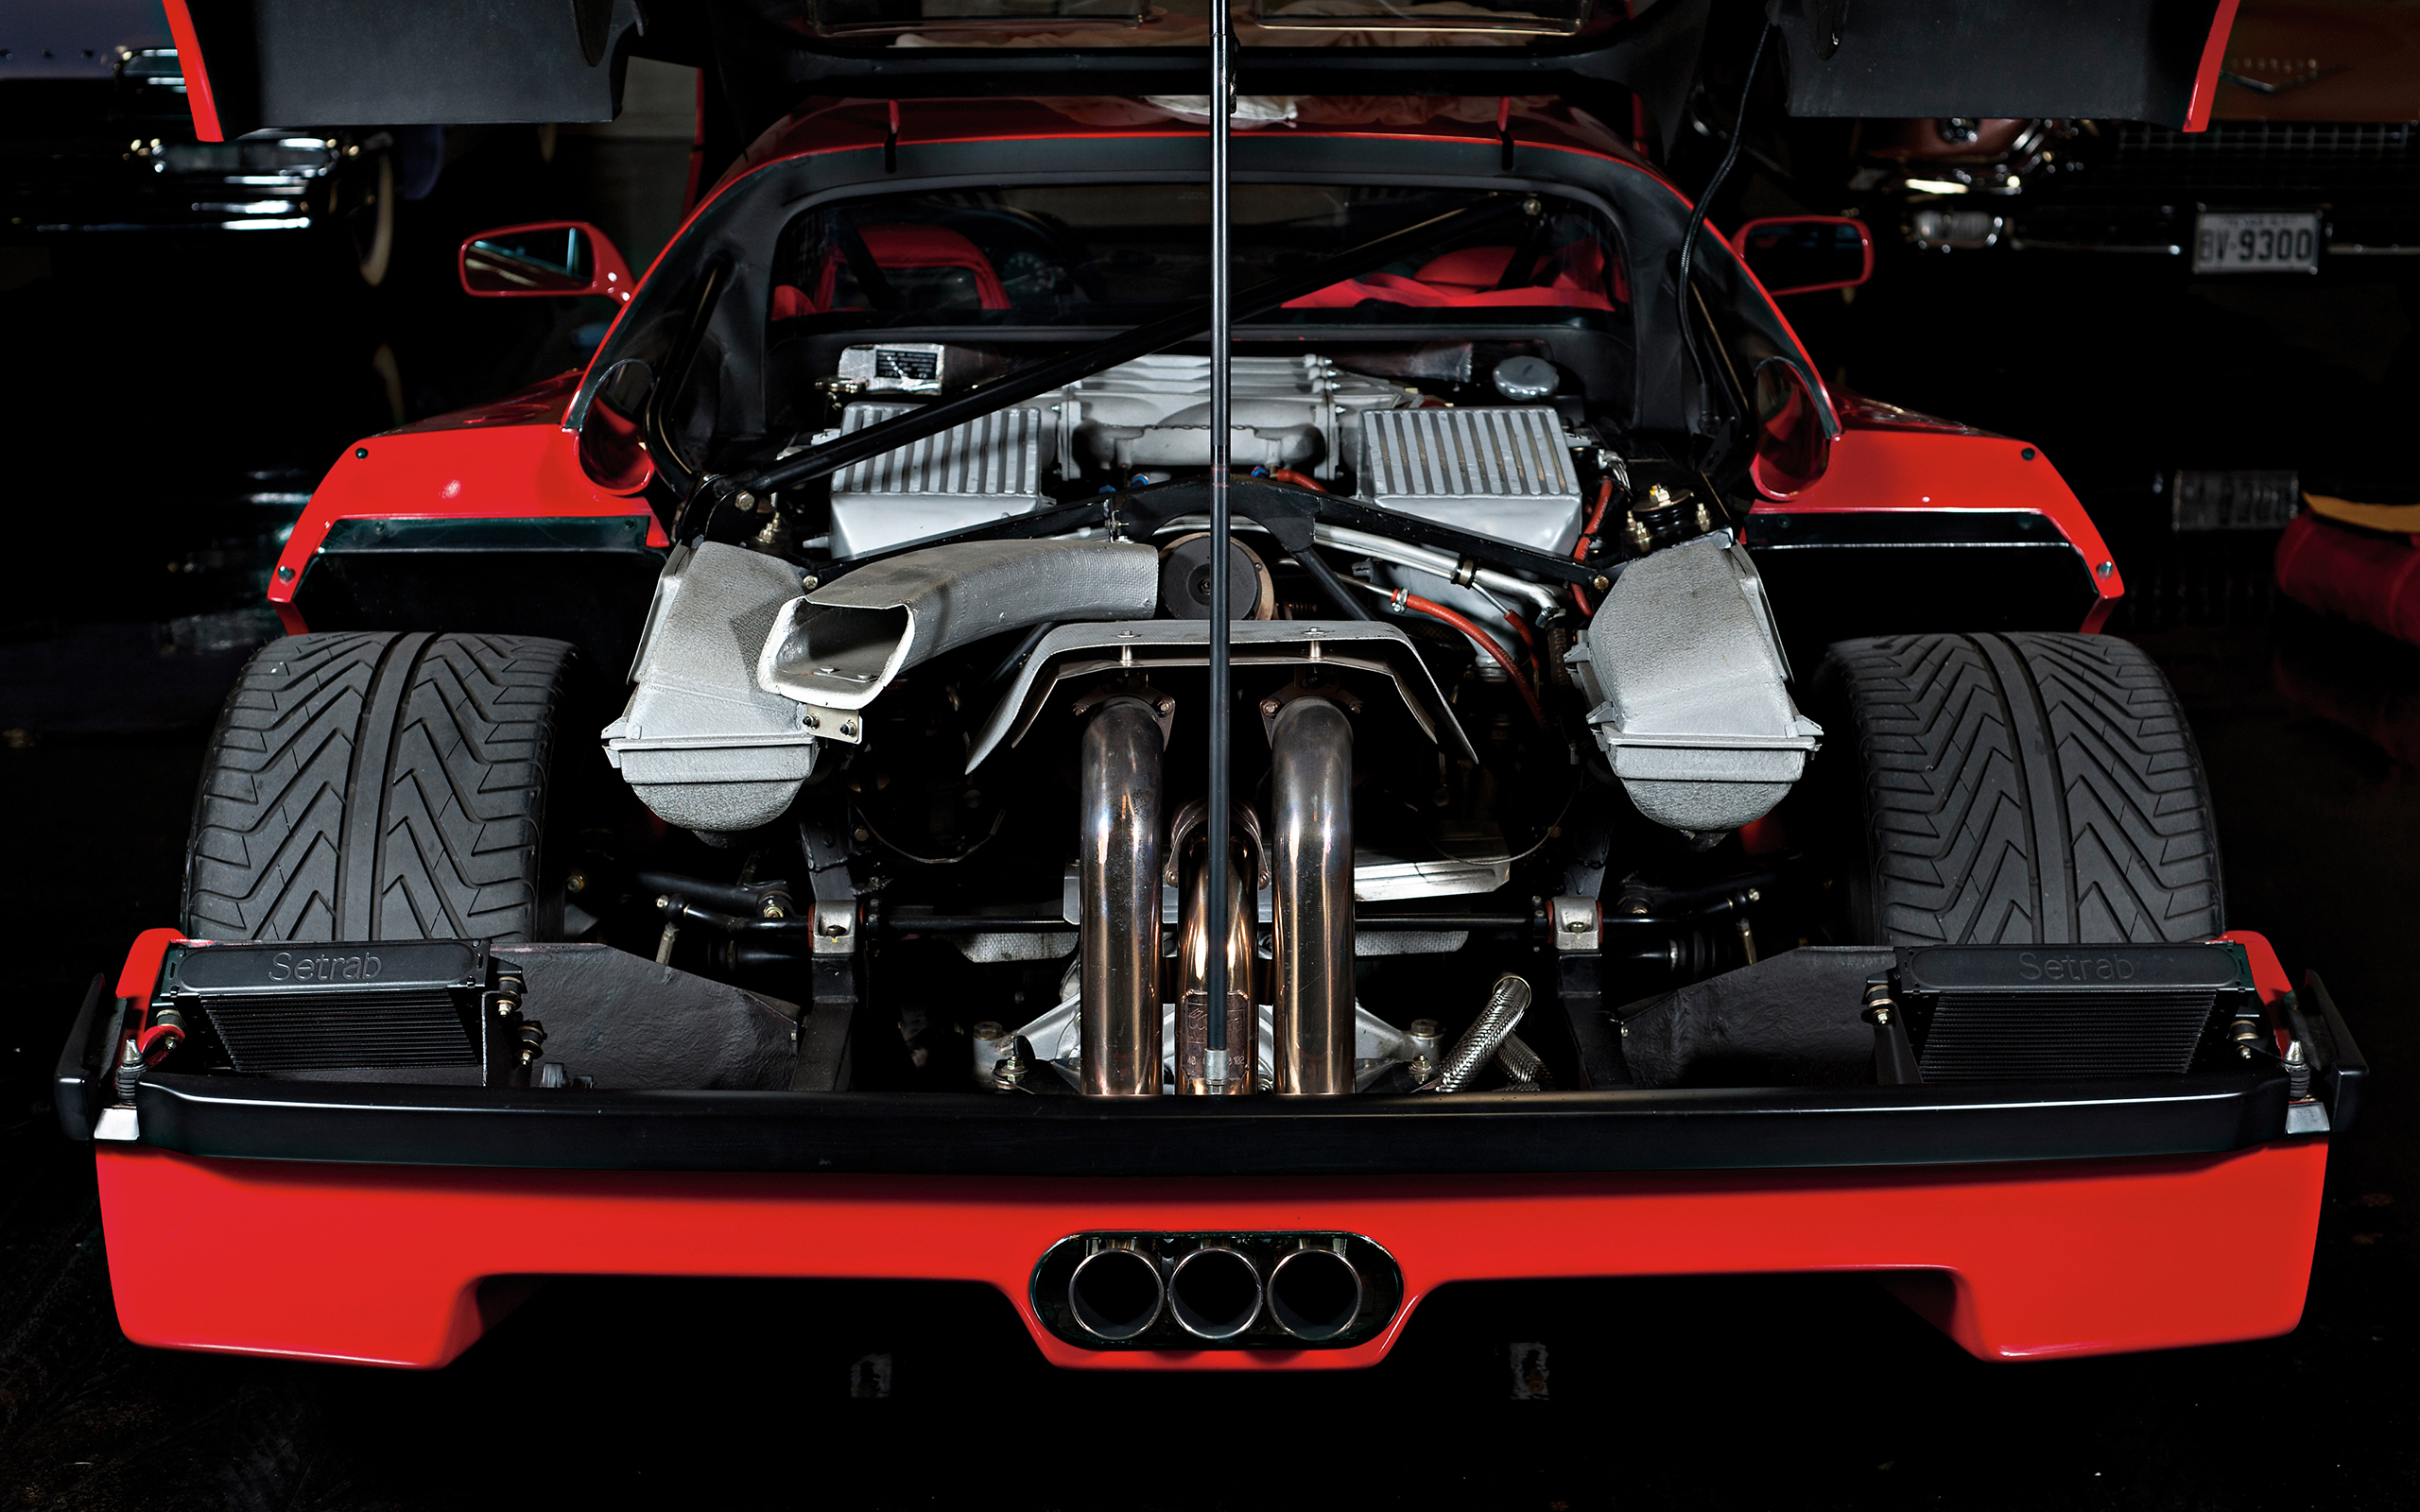 Awesome Ferrari F40 Engine Engines Supercar Supercars Wallpaper | 2560x1600 |  122753 | WallpaperUP